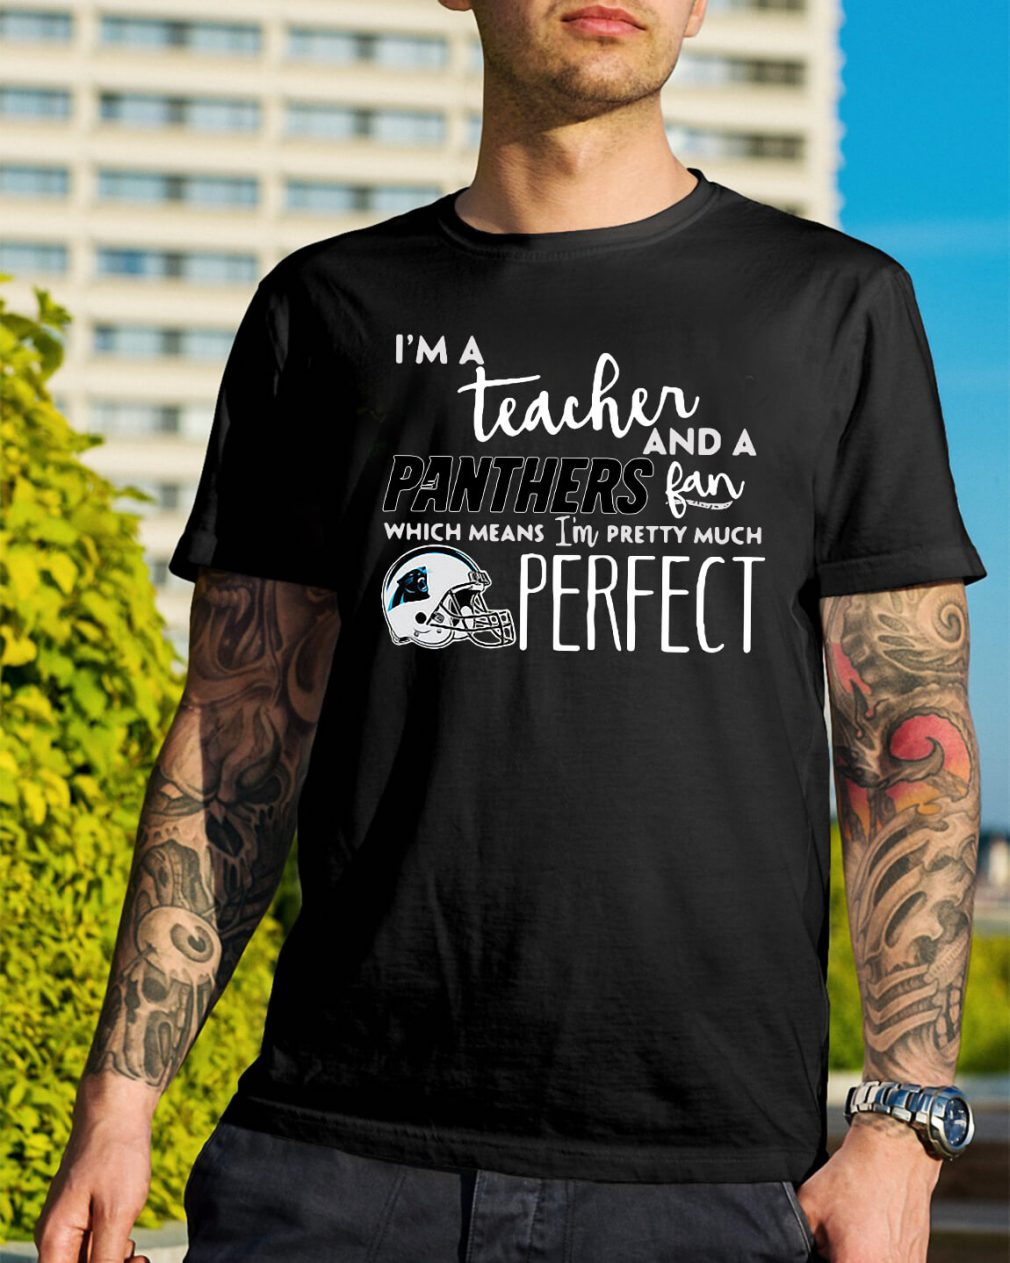 I'm a teacher and a Panthers fan which means I'm pretty much perfect shirt